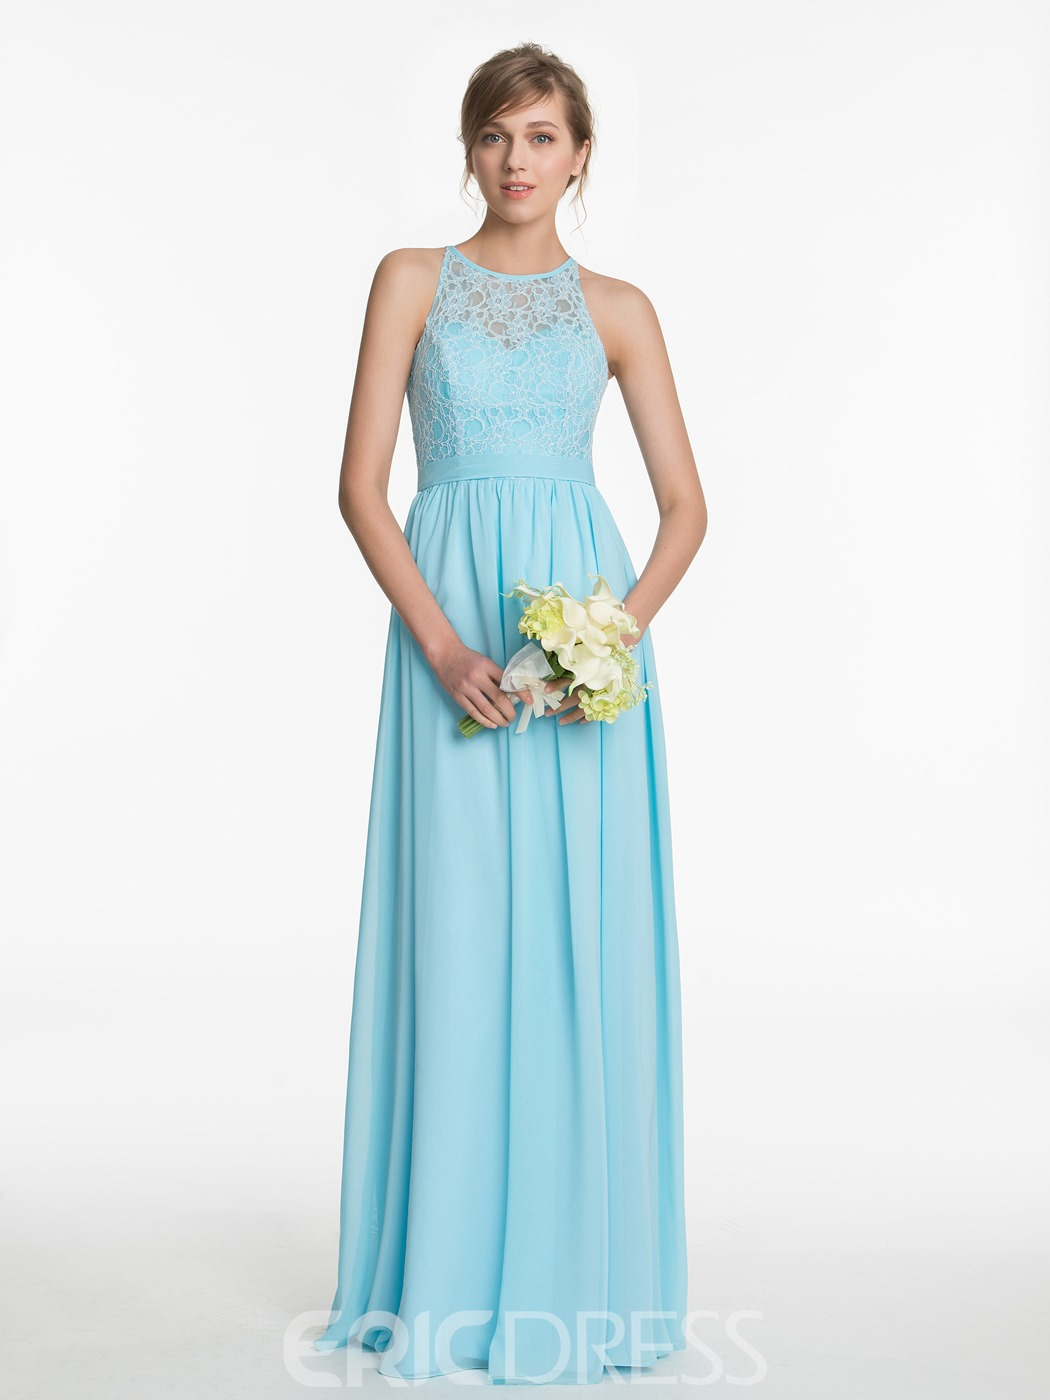 Ericdress Beautiful Lace A Line Long Bridesmaid Dress